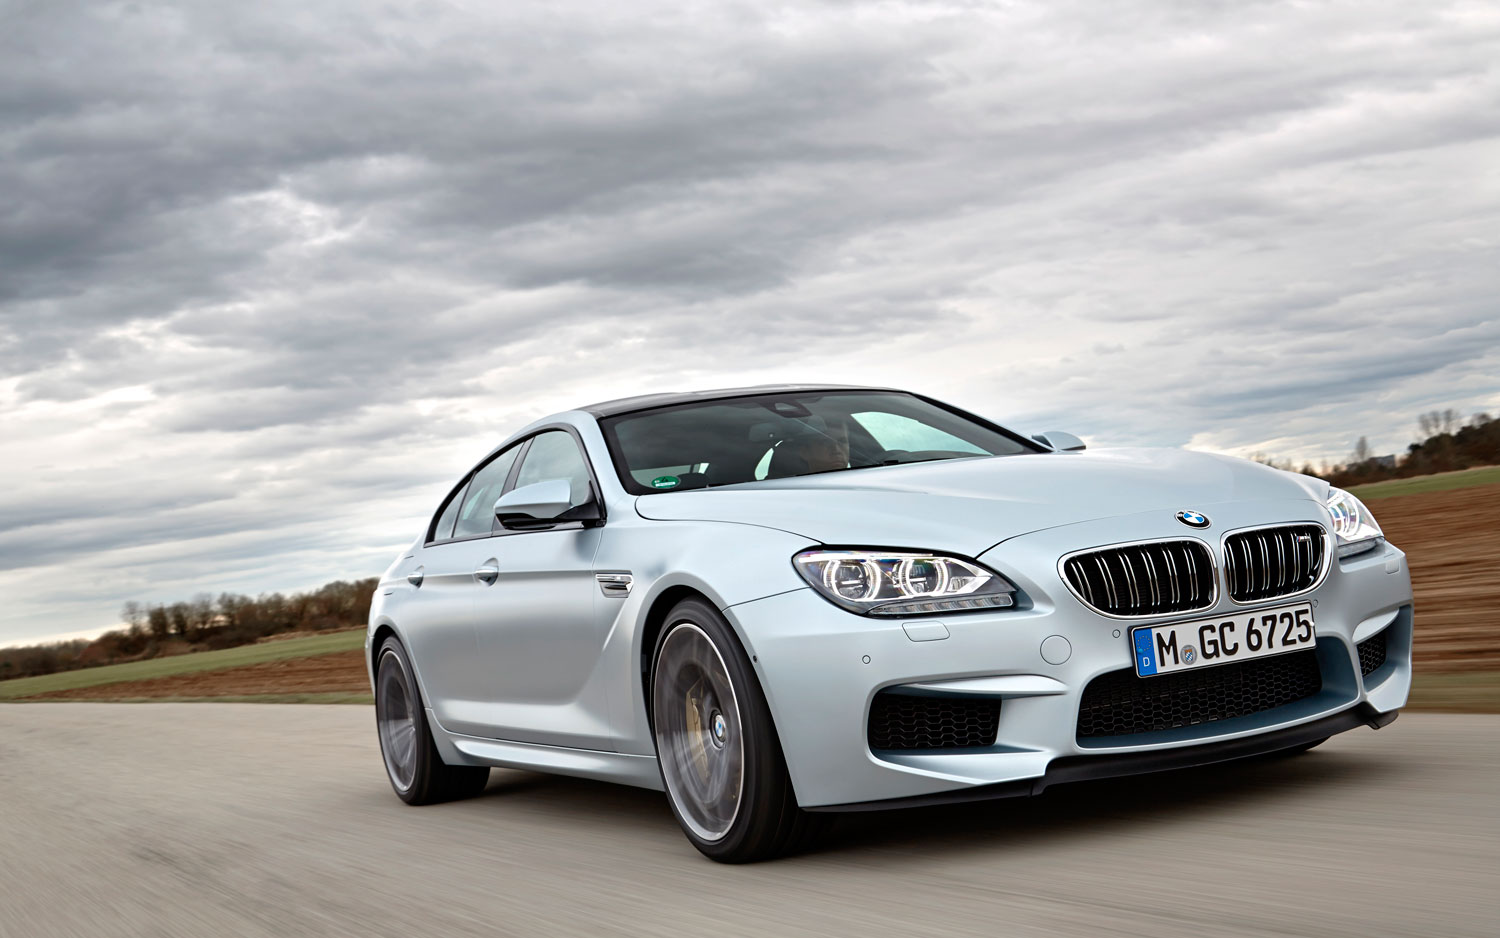 2014 BMW M6 Gran Coupe Front Right View 21